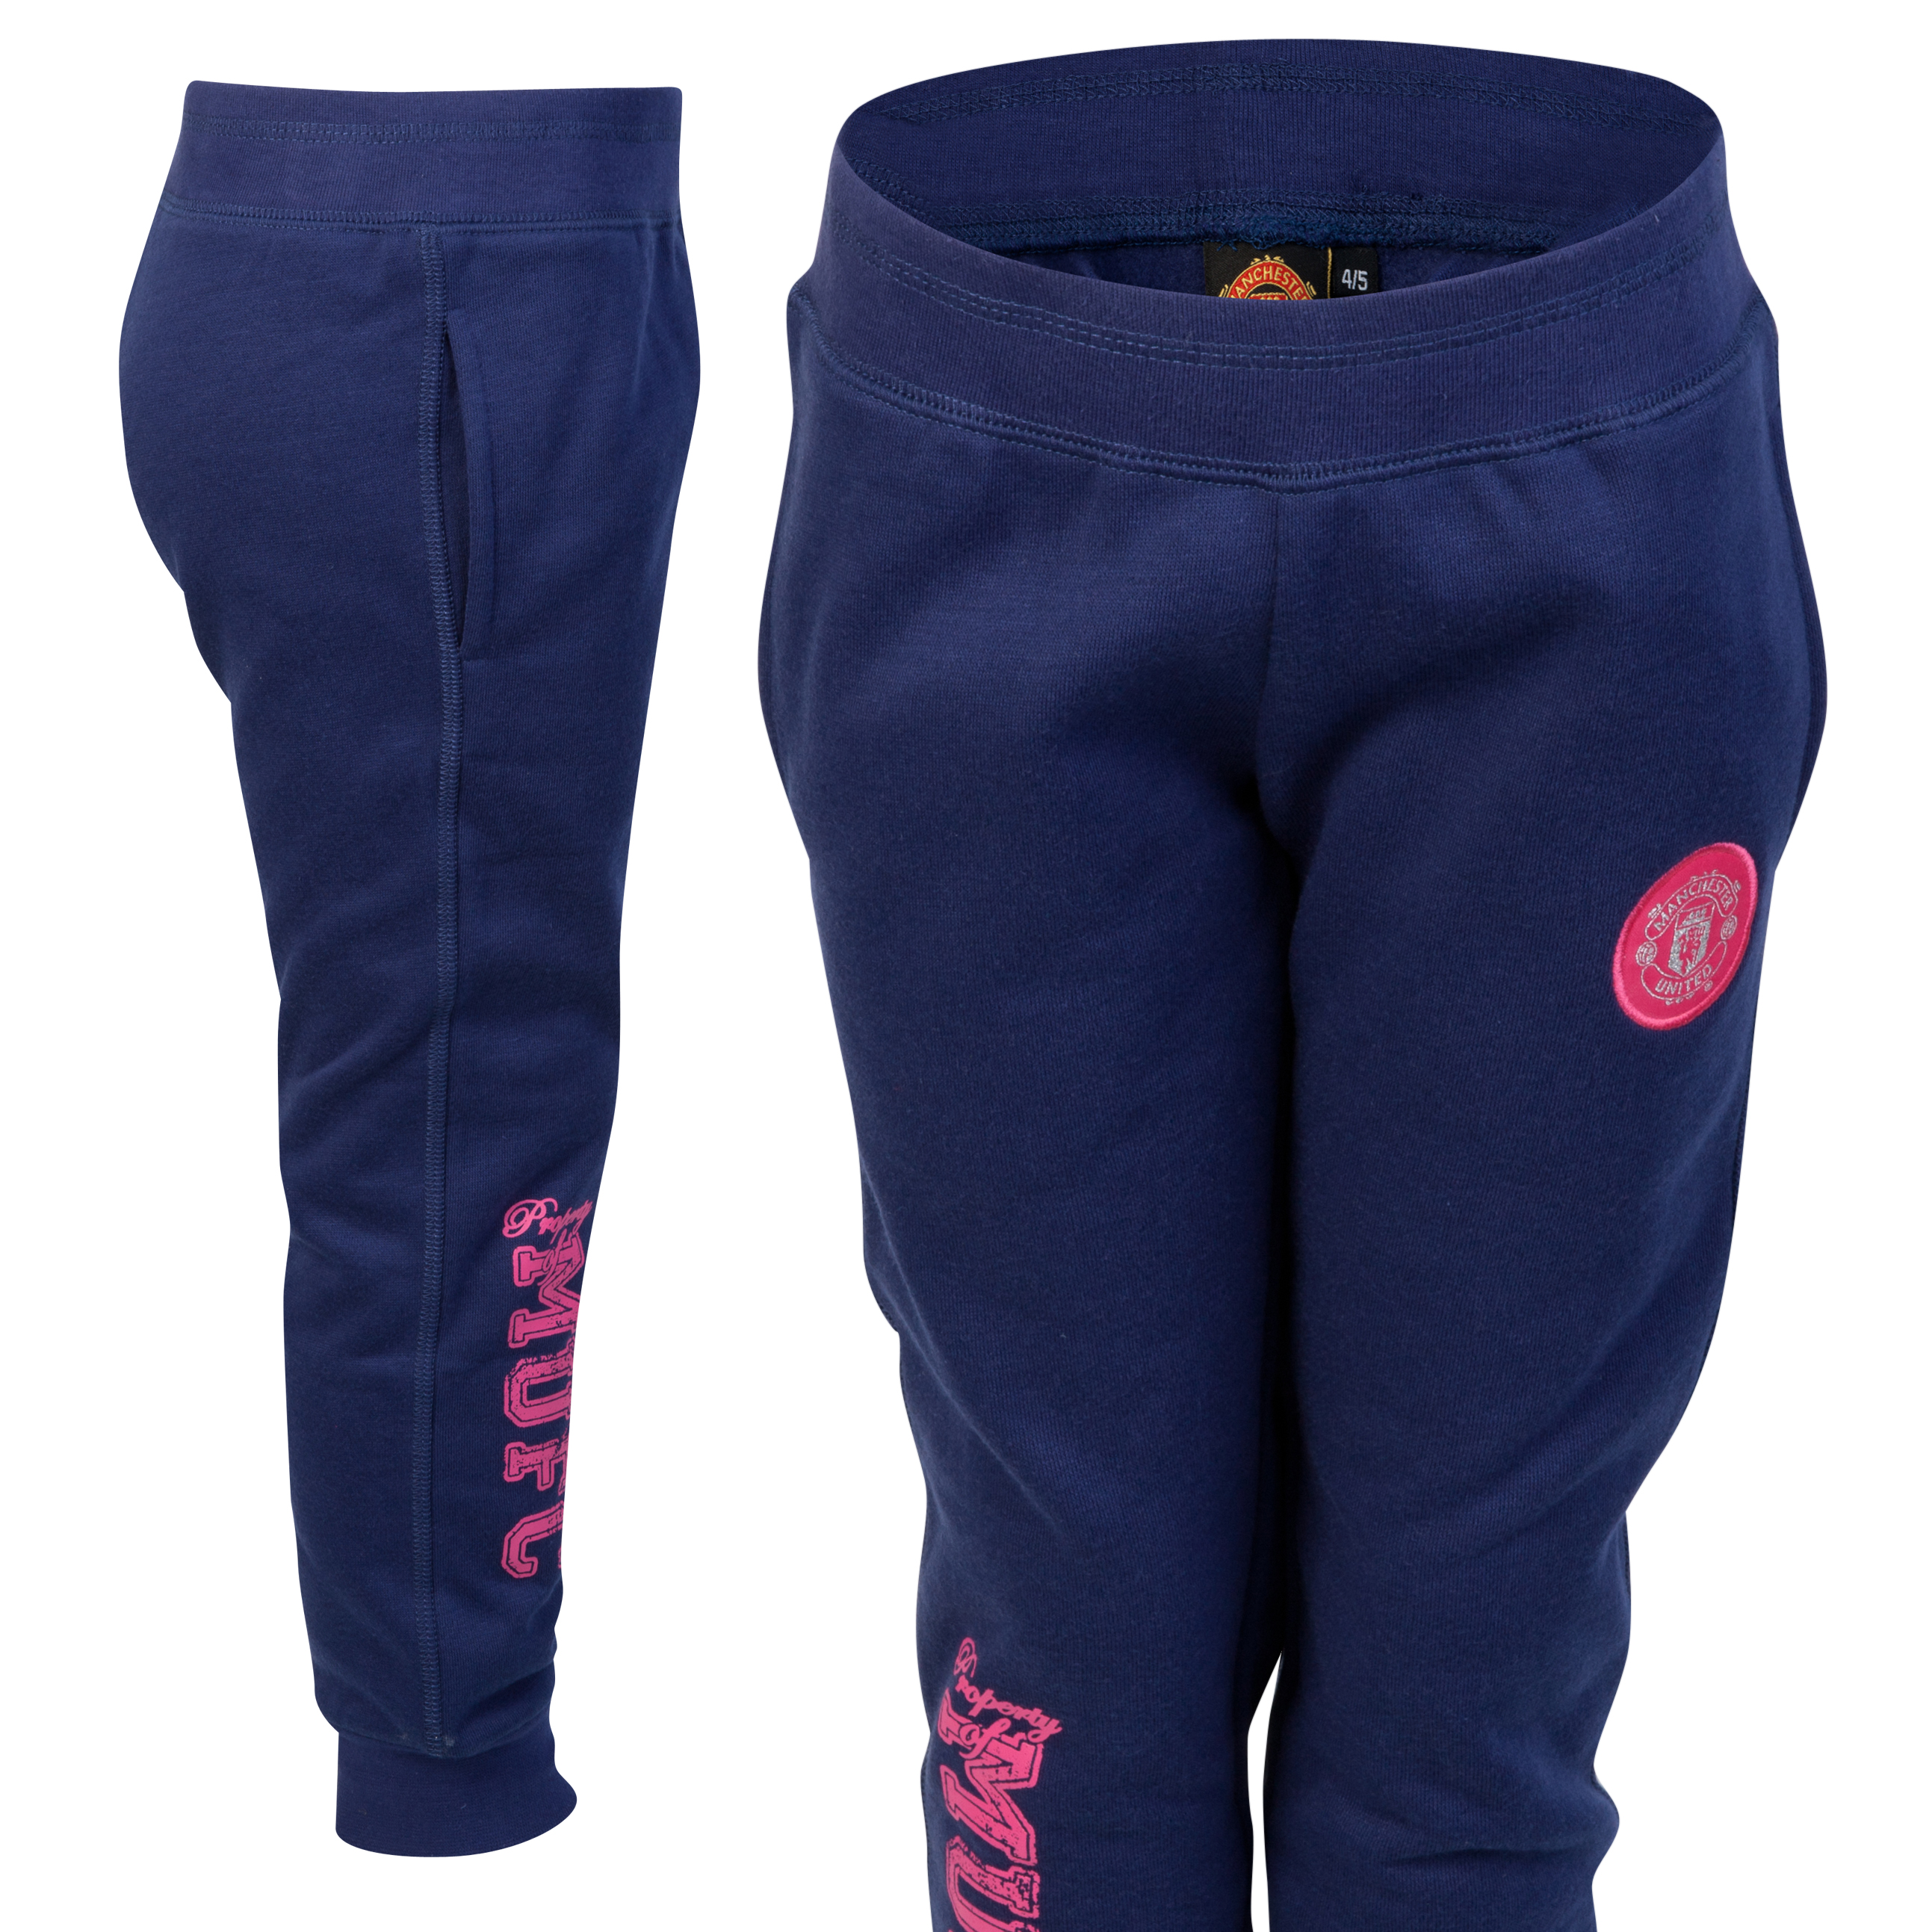 Manchester United MUFC Skinny Leg Sweat Pant - Blueberry - Girls